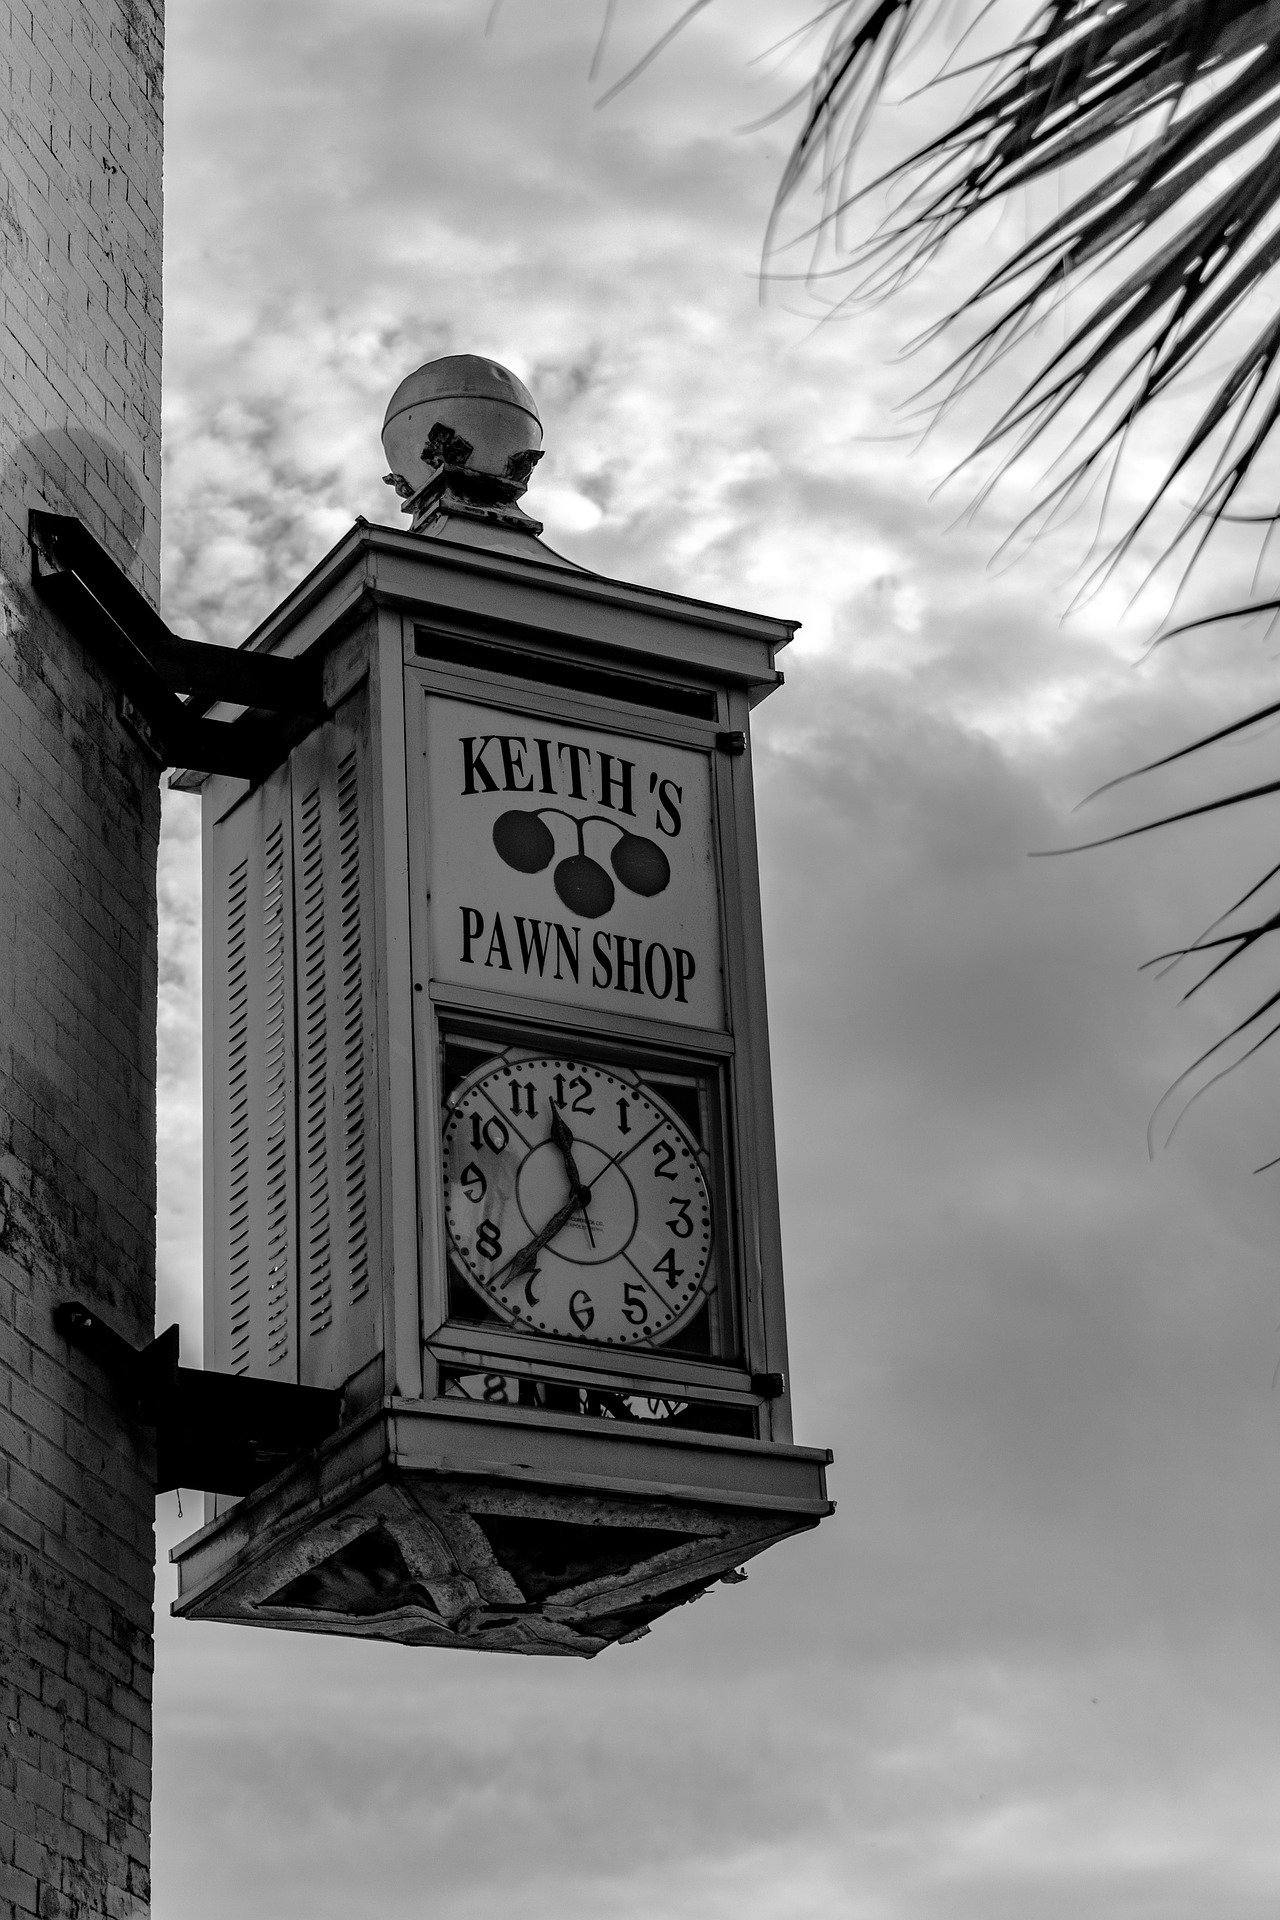 A black-and-white image of a sign for a pawn shop | Photo: Pixabay/jeffshattuck